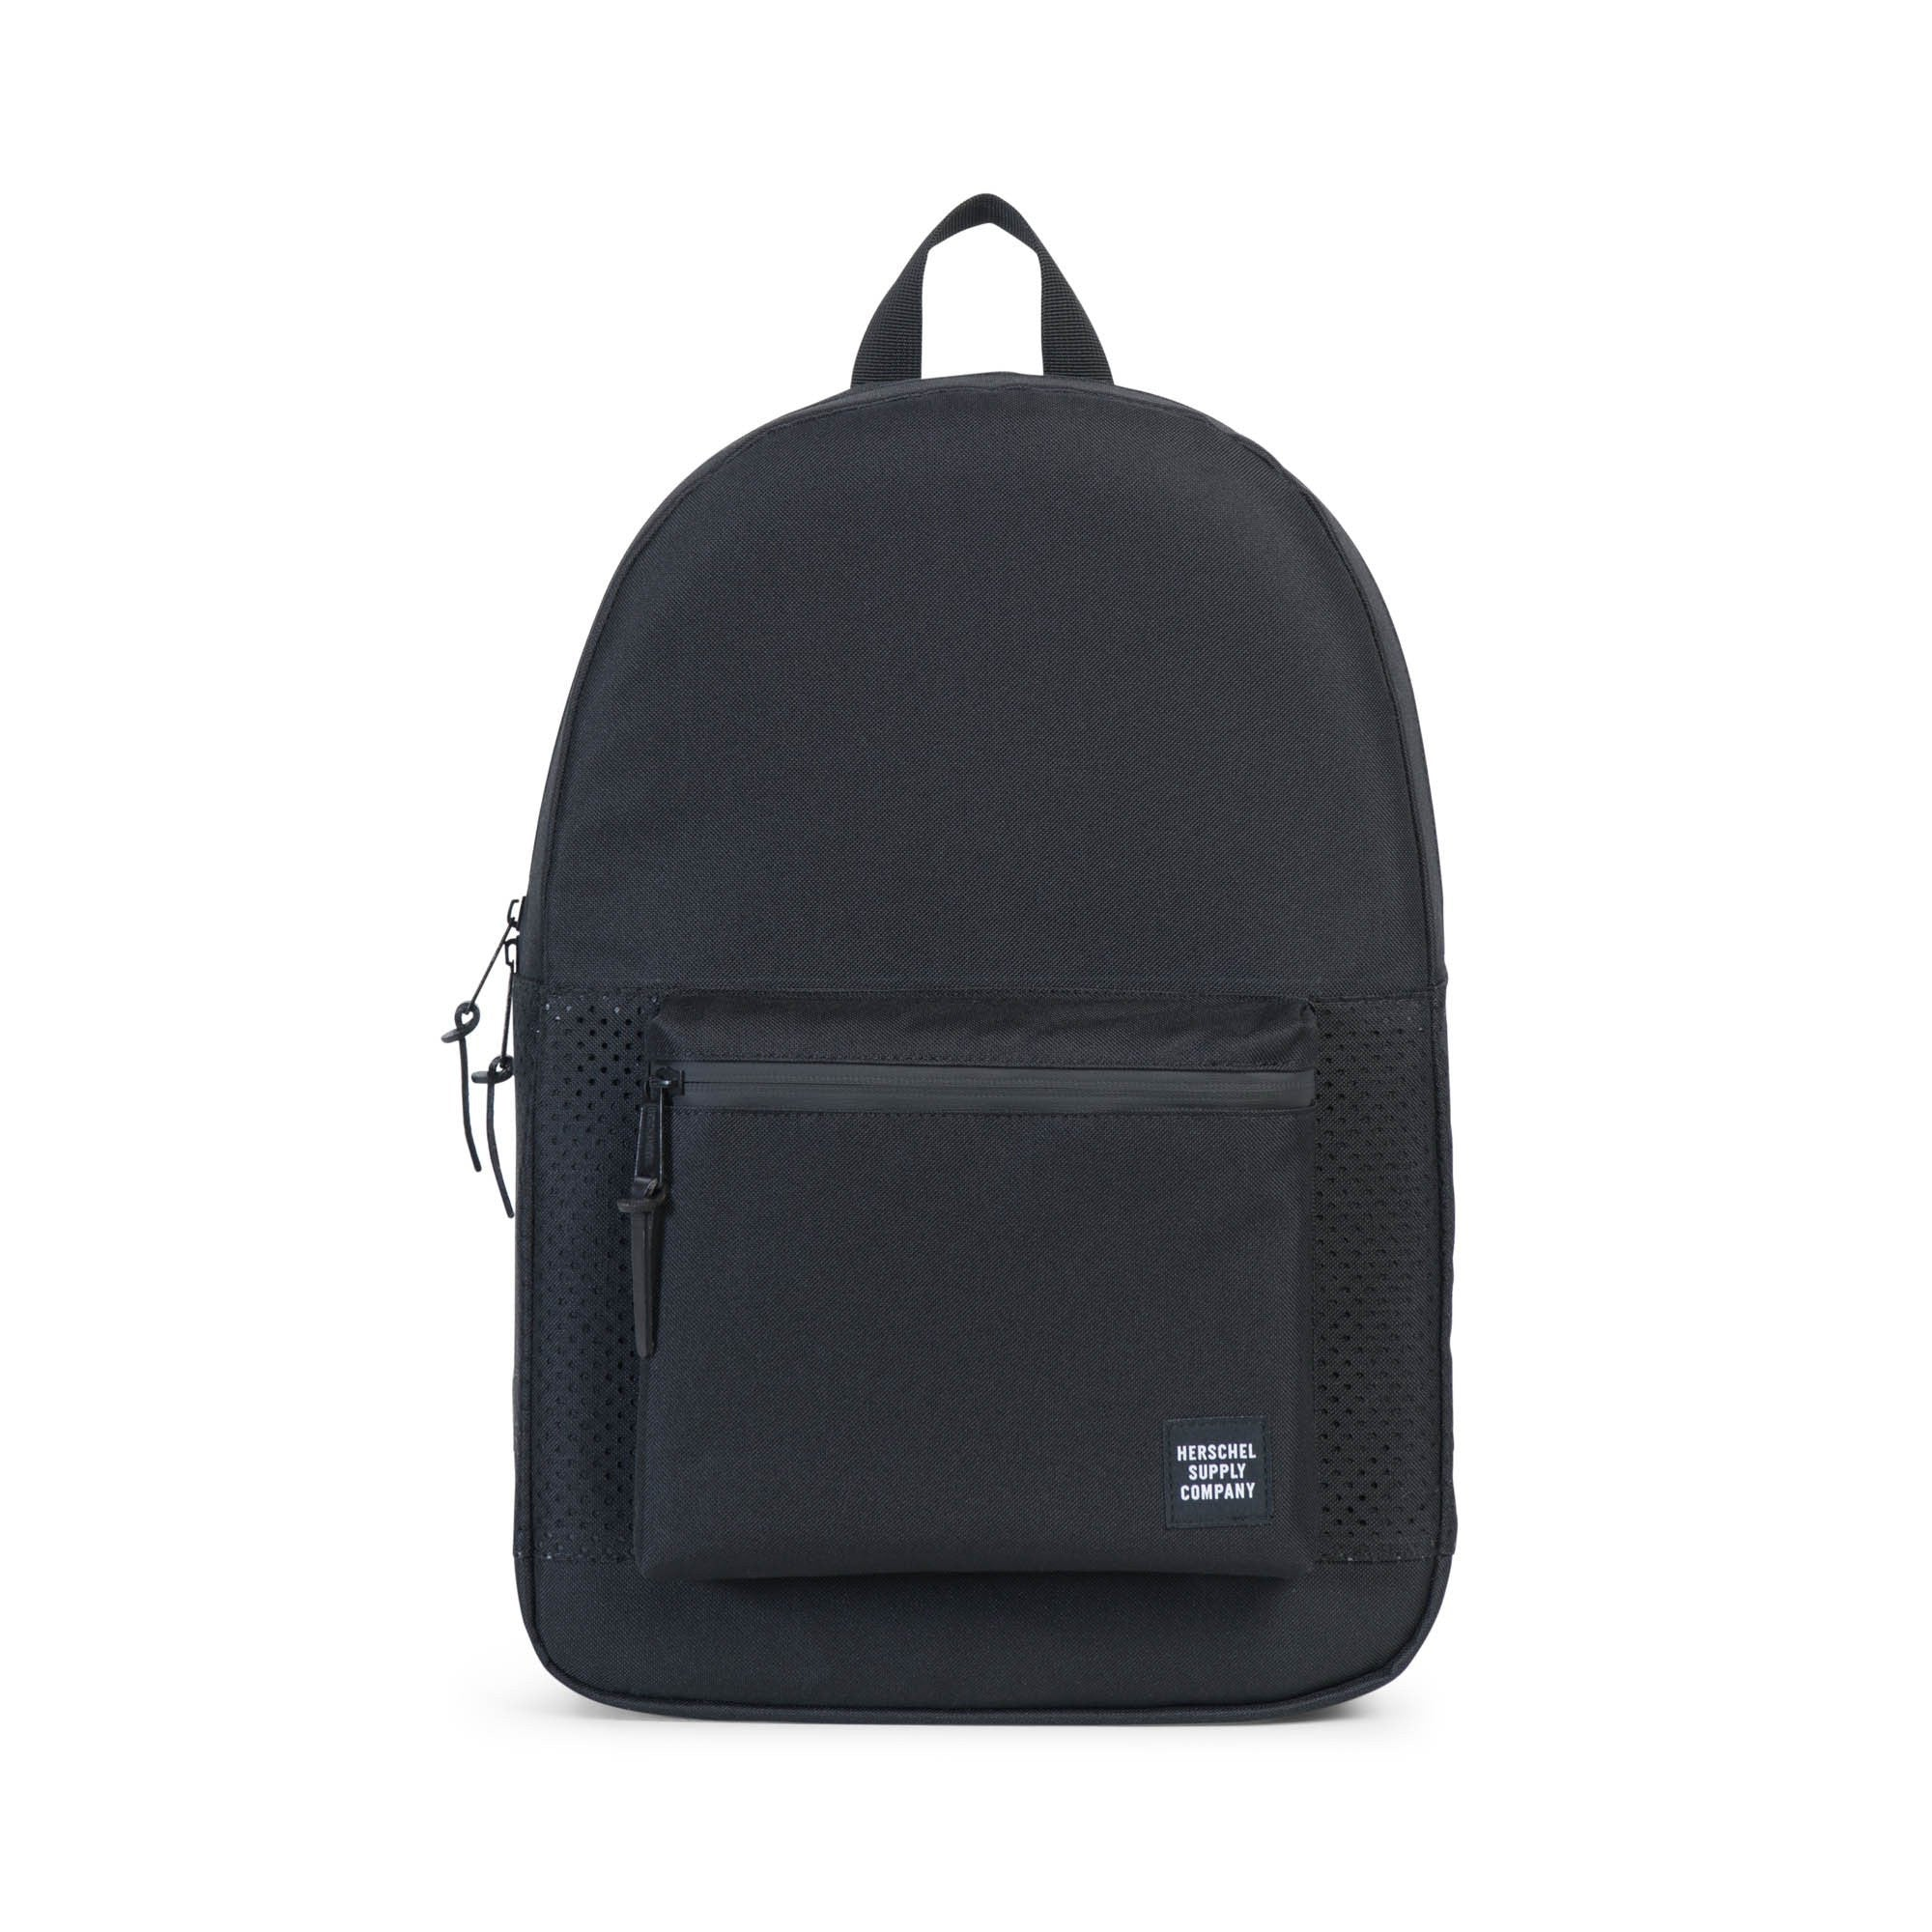 Herschel Supply Co. - Settlement Backpack, Perforated Black/Black - The Giant Peach - 1